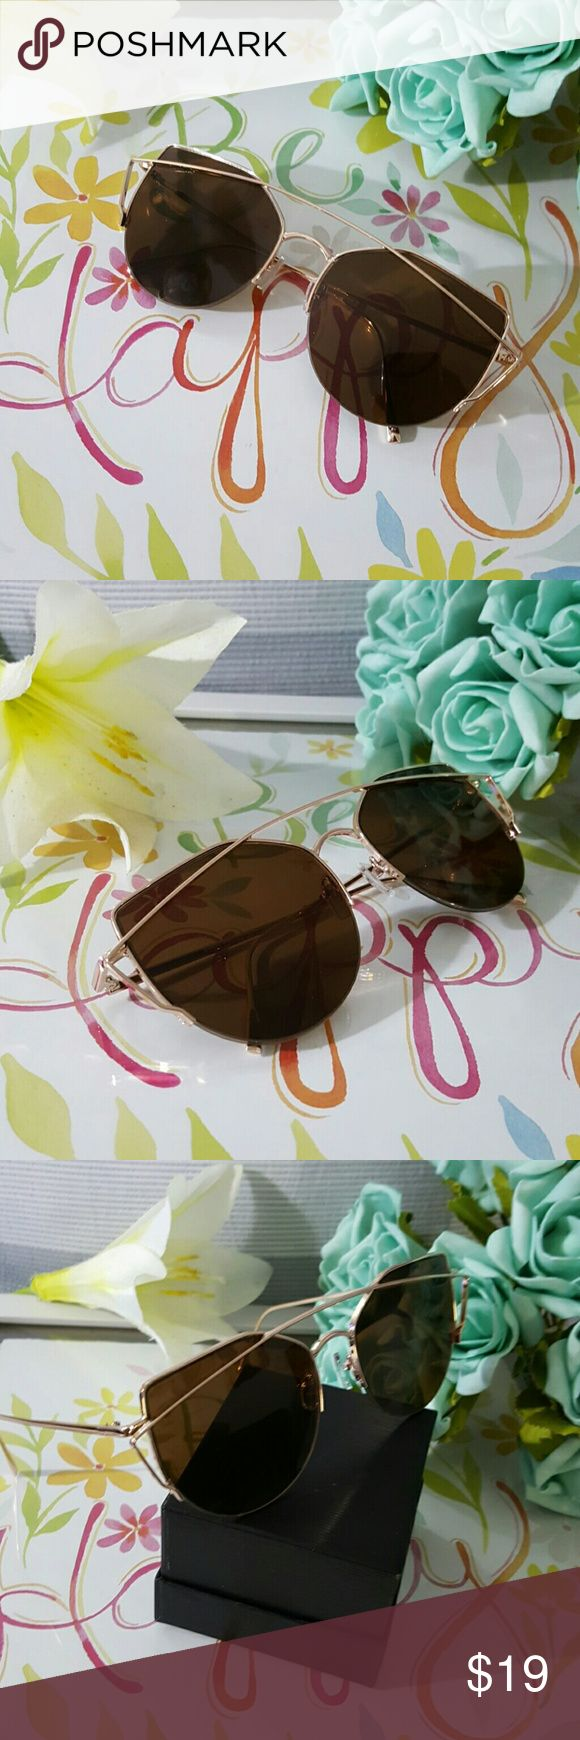 HIGH QUALITY CAT EYE  VINTAGE  SUNGLASSES GOLD FRAME BROWN   HIGH QUALITY CAT EYE MIRROR VINTAGE  SUNGLASSES Cat eye Women Sunglasses 2017 New Brand Design Mirror Flat Rose Gold Vintage Cateye Fashion sun glasses lady Eyewear  52mm   ALSO AVAILABLE IN MY CLOSET. LATEX WAIST TRAINER NEOPRENE CONTROL CINCHER VEST CORSET BUTT LIFTER PADDED PANTY SWIMSUIT WOMAN MEN SUNGLASSES SILICONE BRA ADHESIVE NIPPLE COVERS PHONE Accessories Sunglasses